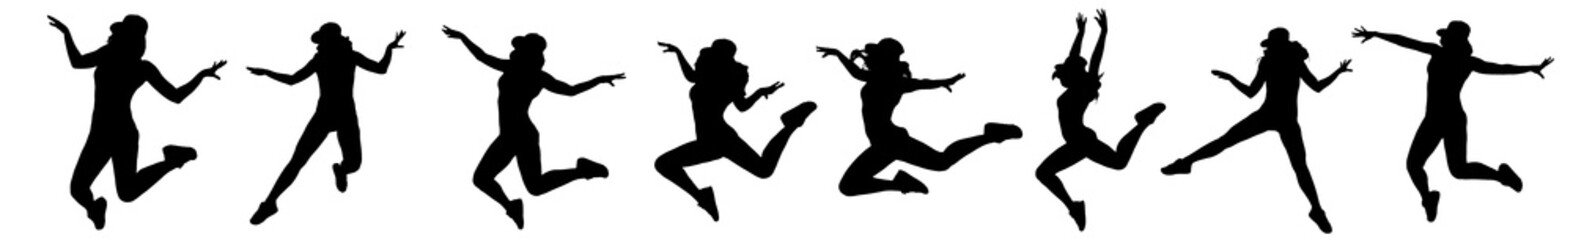 set of silhouette of woman dancing and jumping on white background